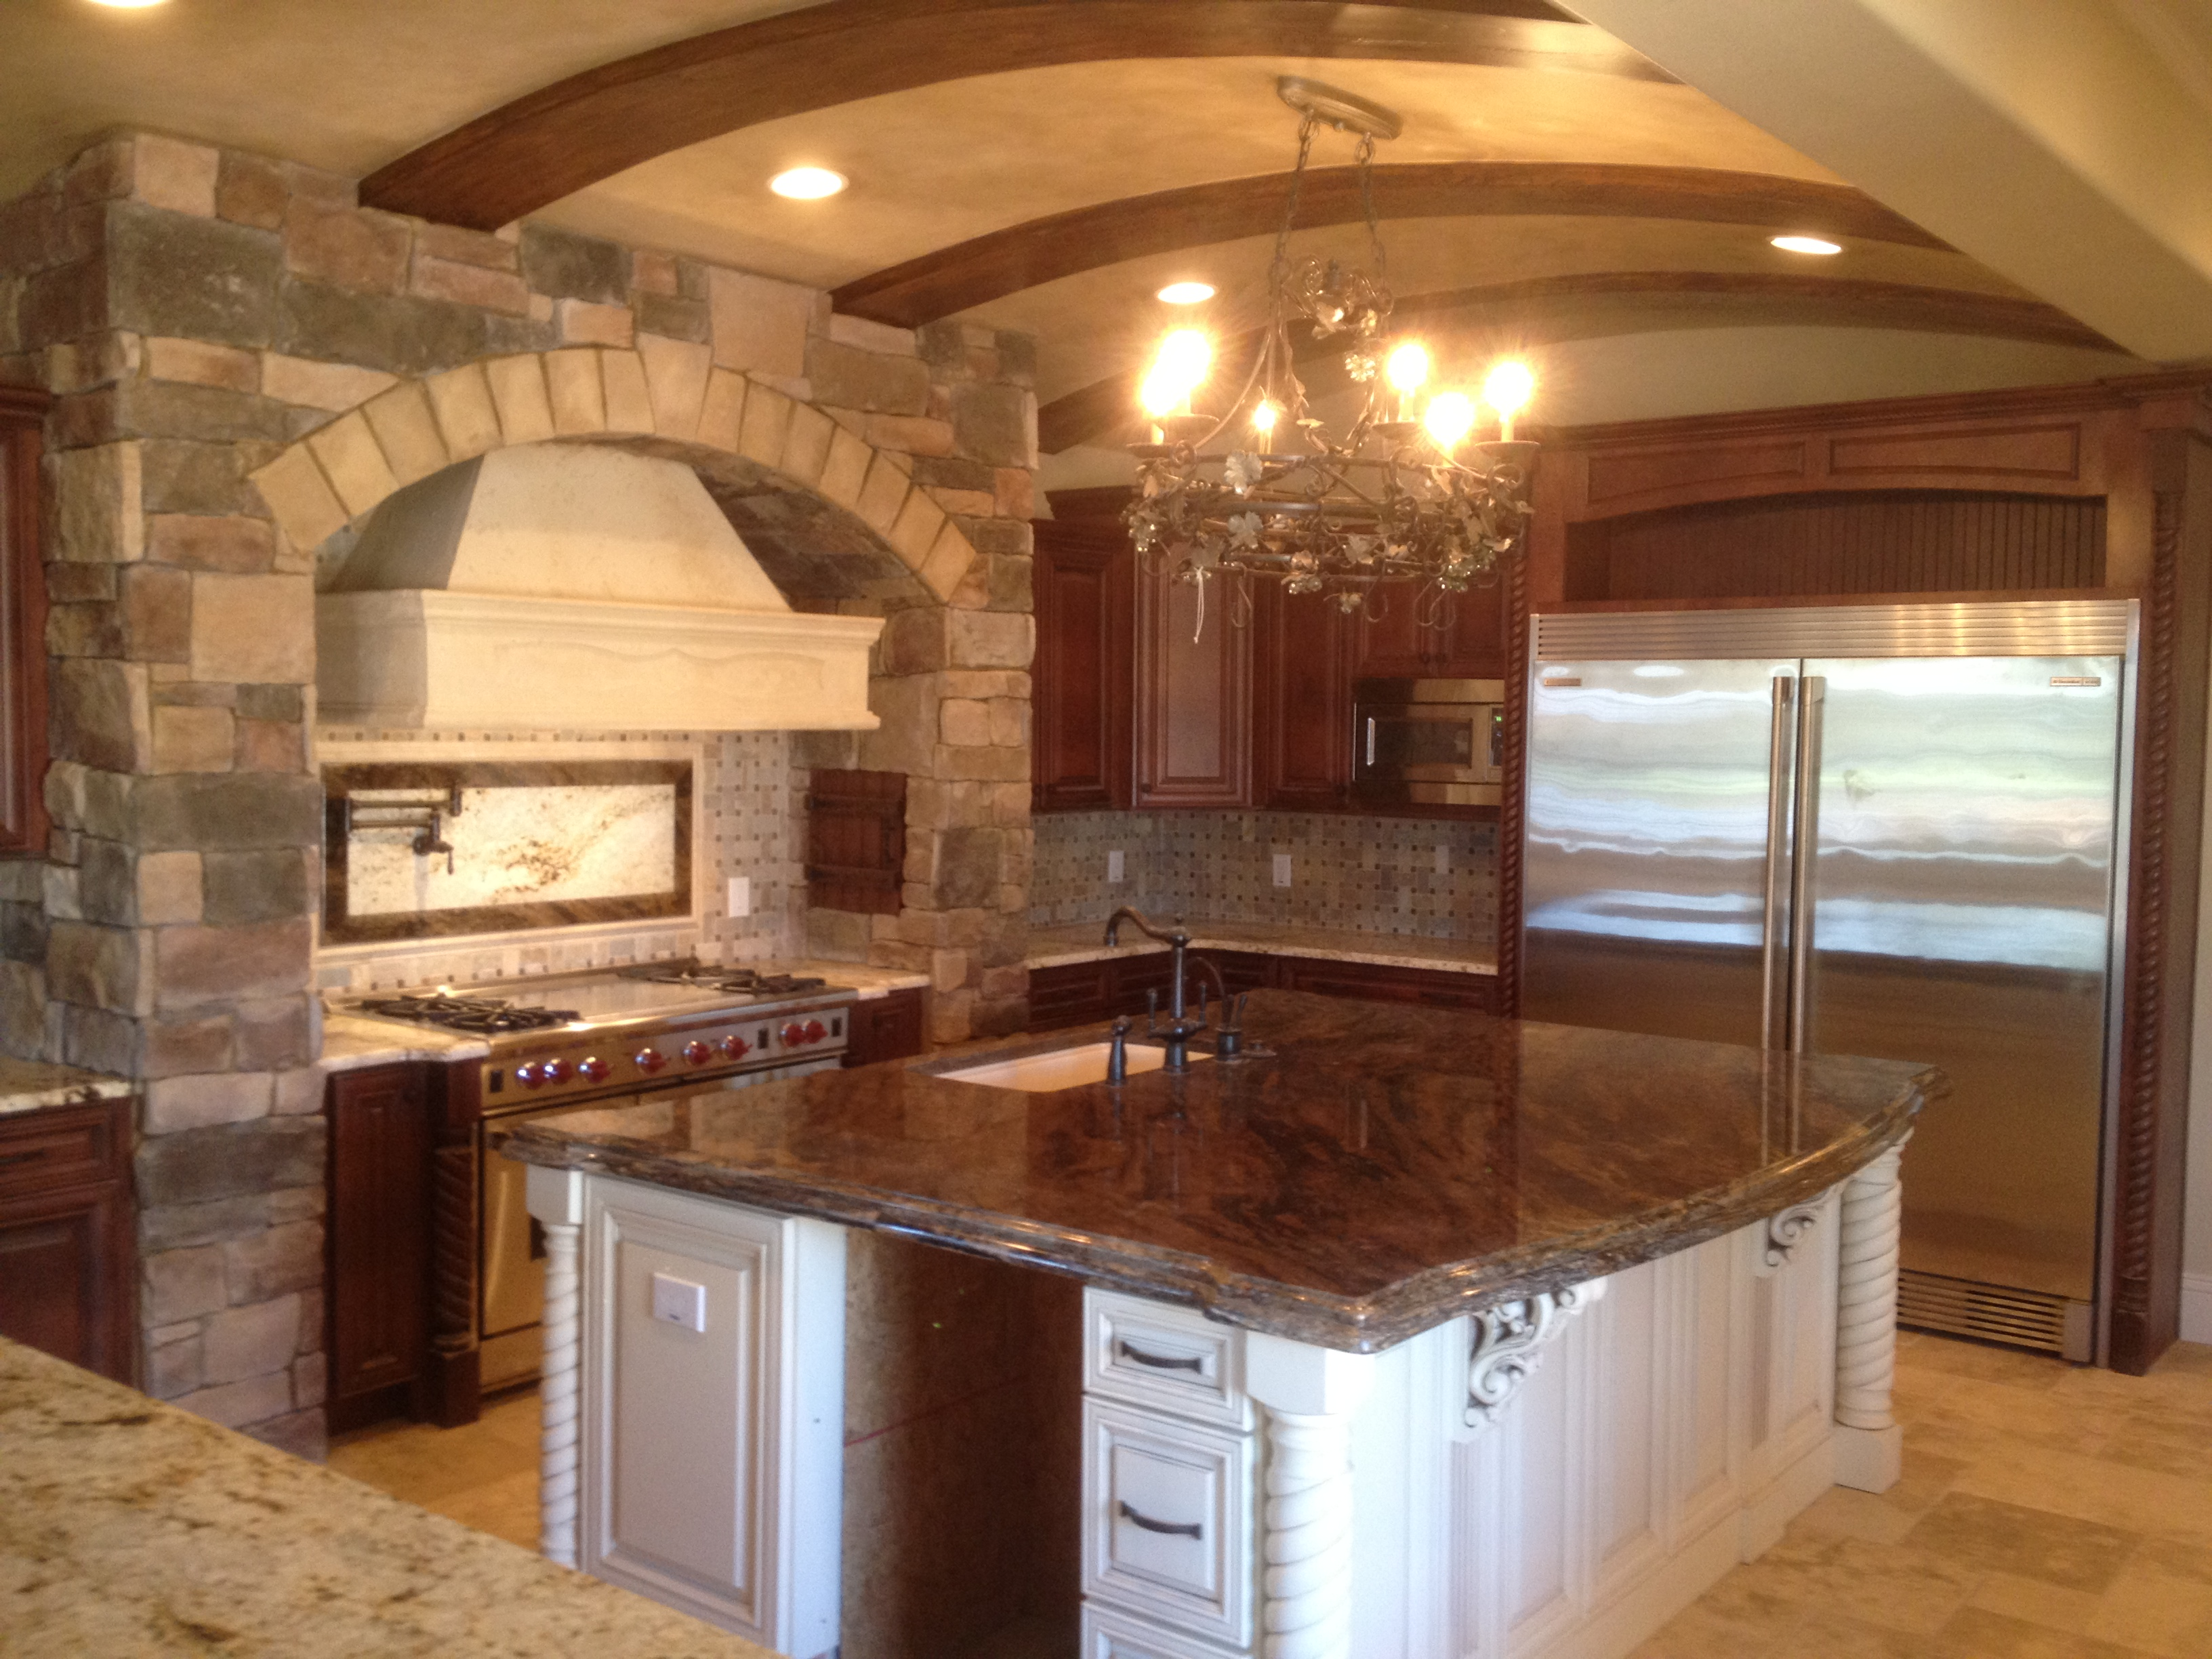 Luxury Tuscan Kitchen for Less | Trade Secrets by Jorge